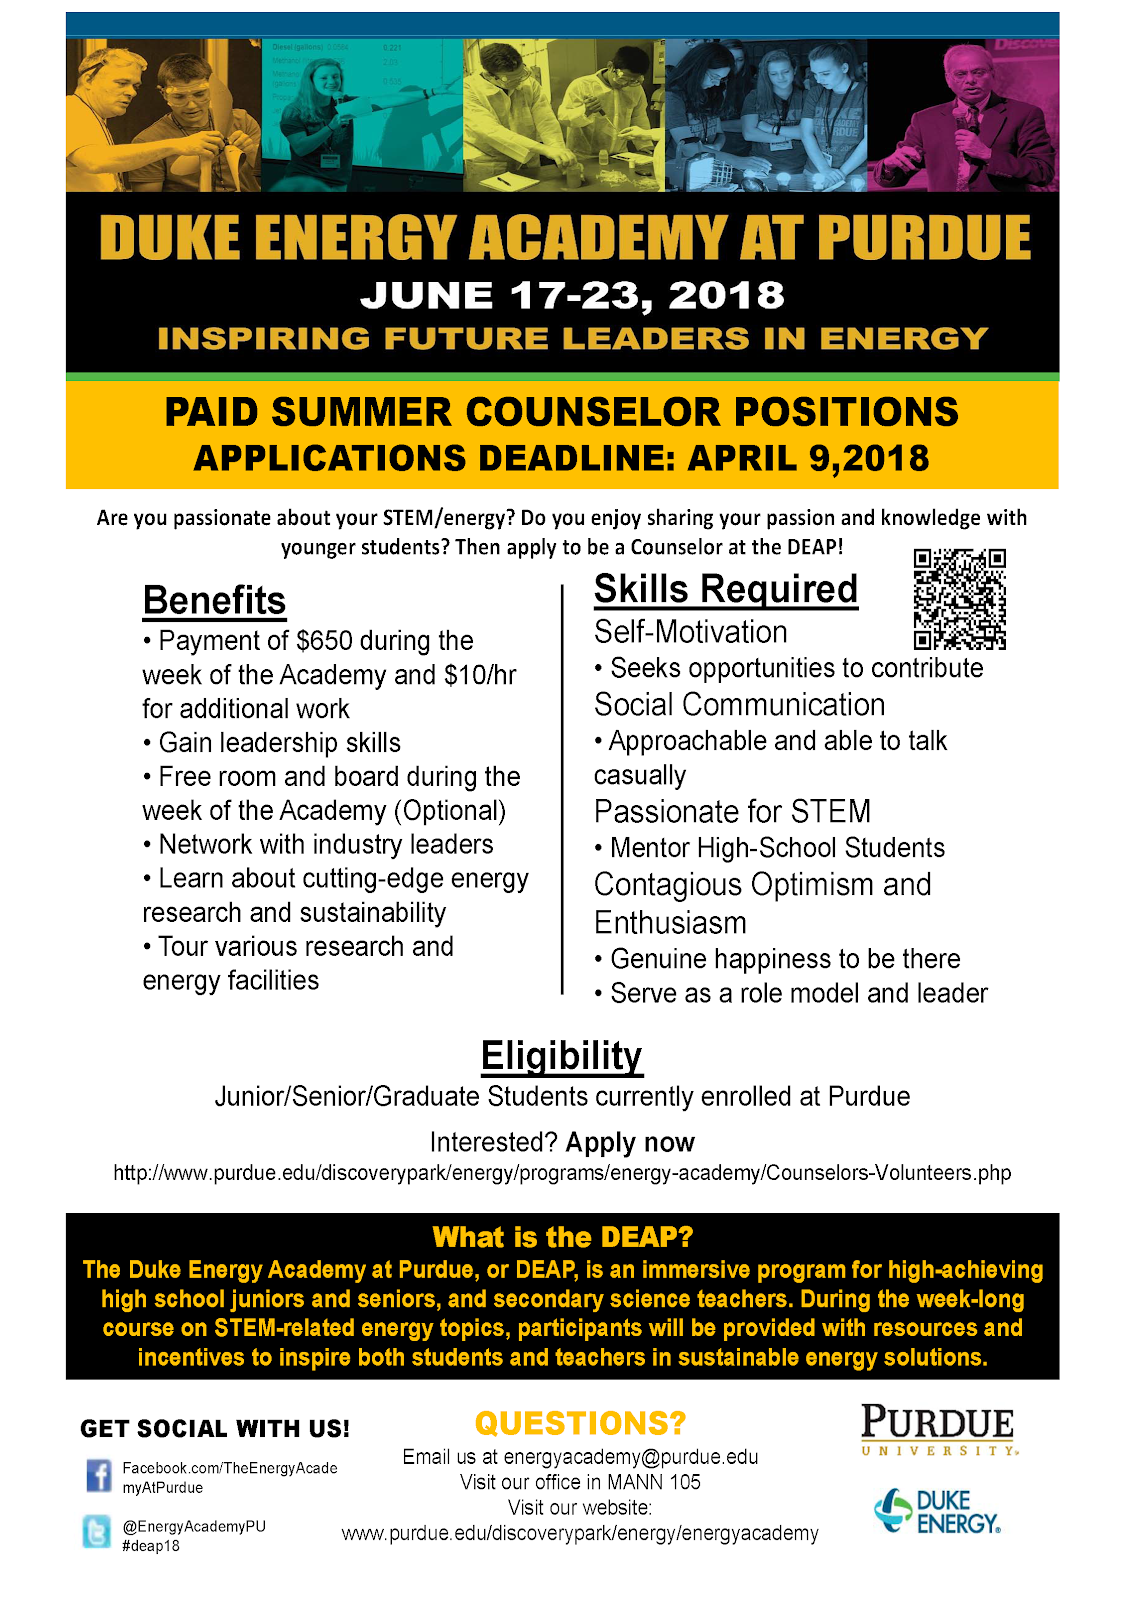 Purdue IE Undergrad News and Notes: Job opportunities for